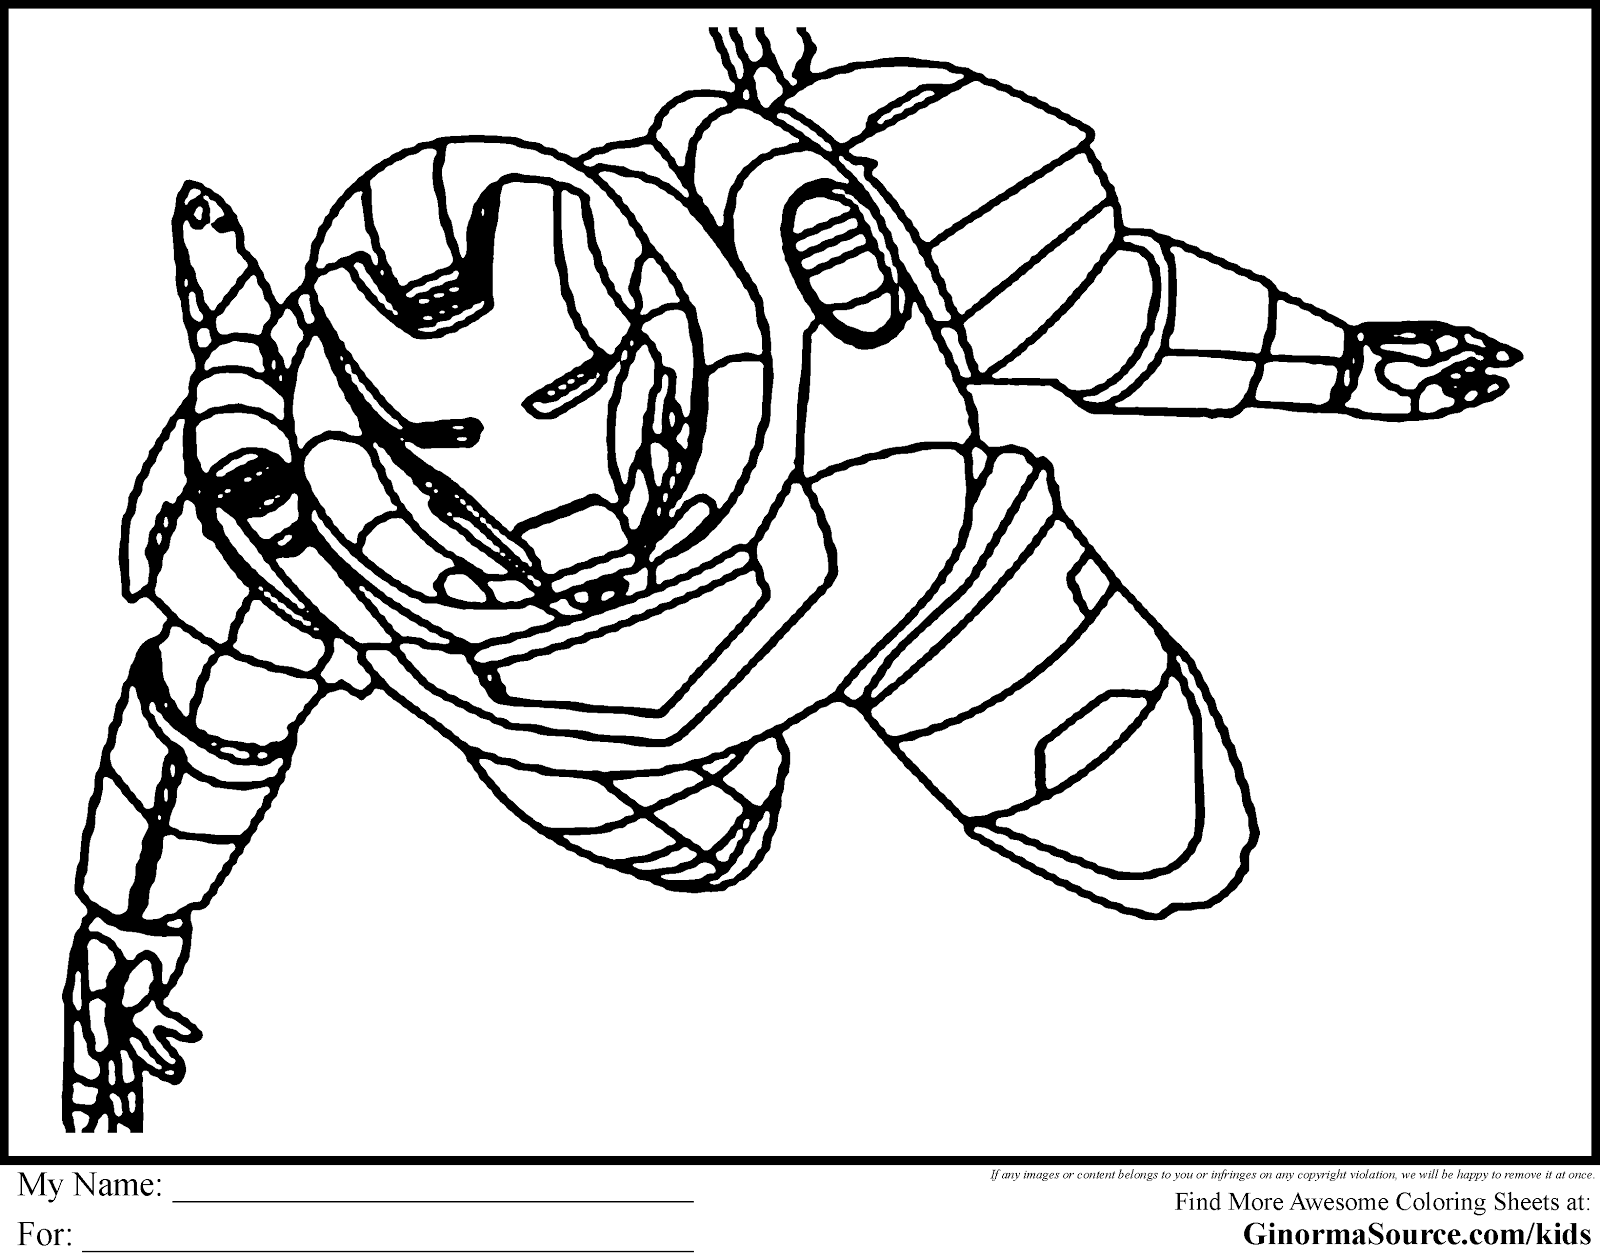 coloring pages superheroes superhero coloring pages to download and print for free coloring pages superheroes